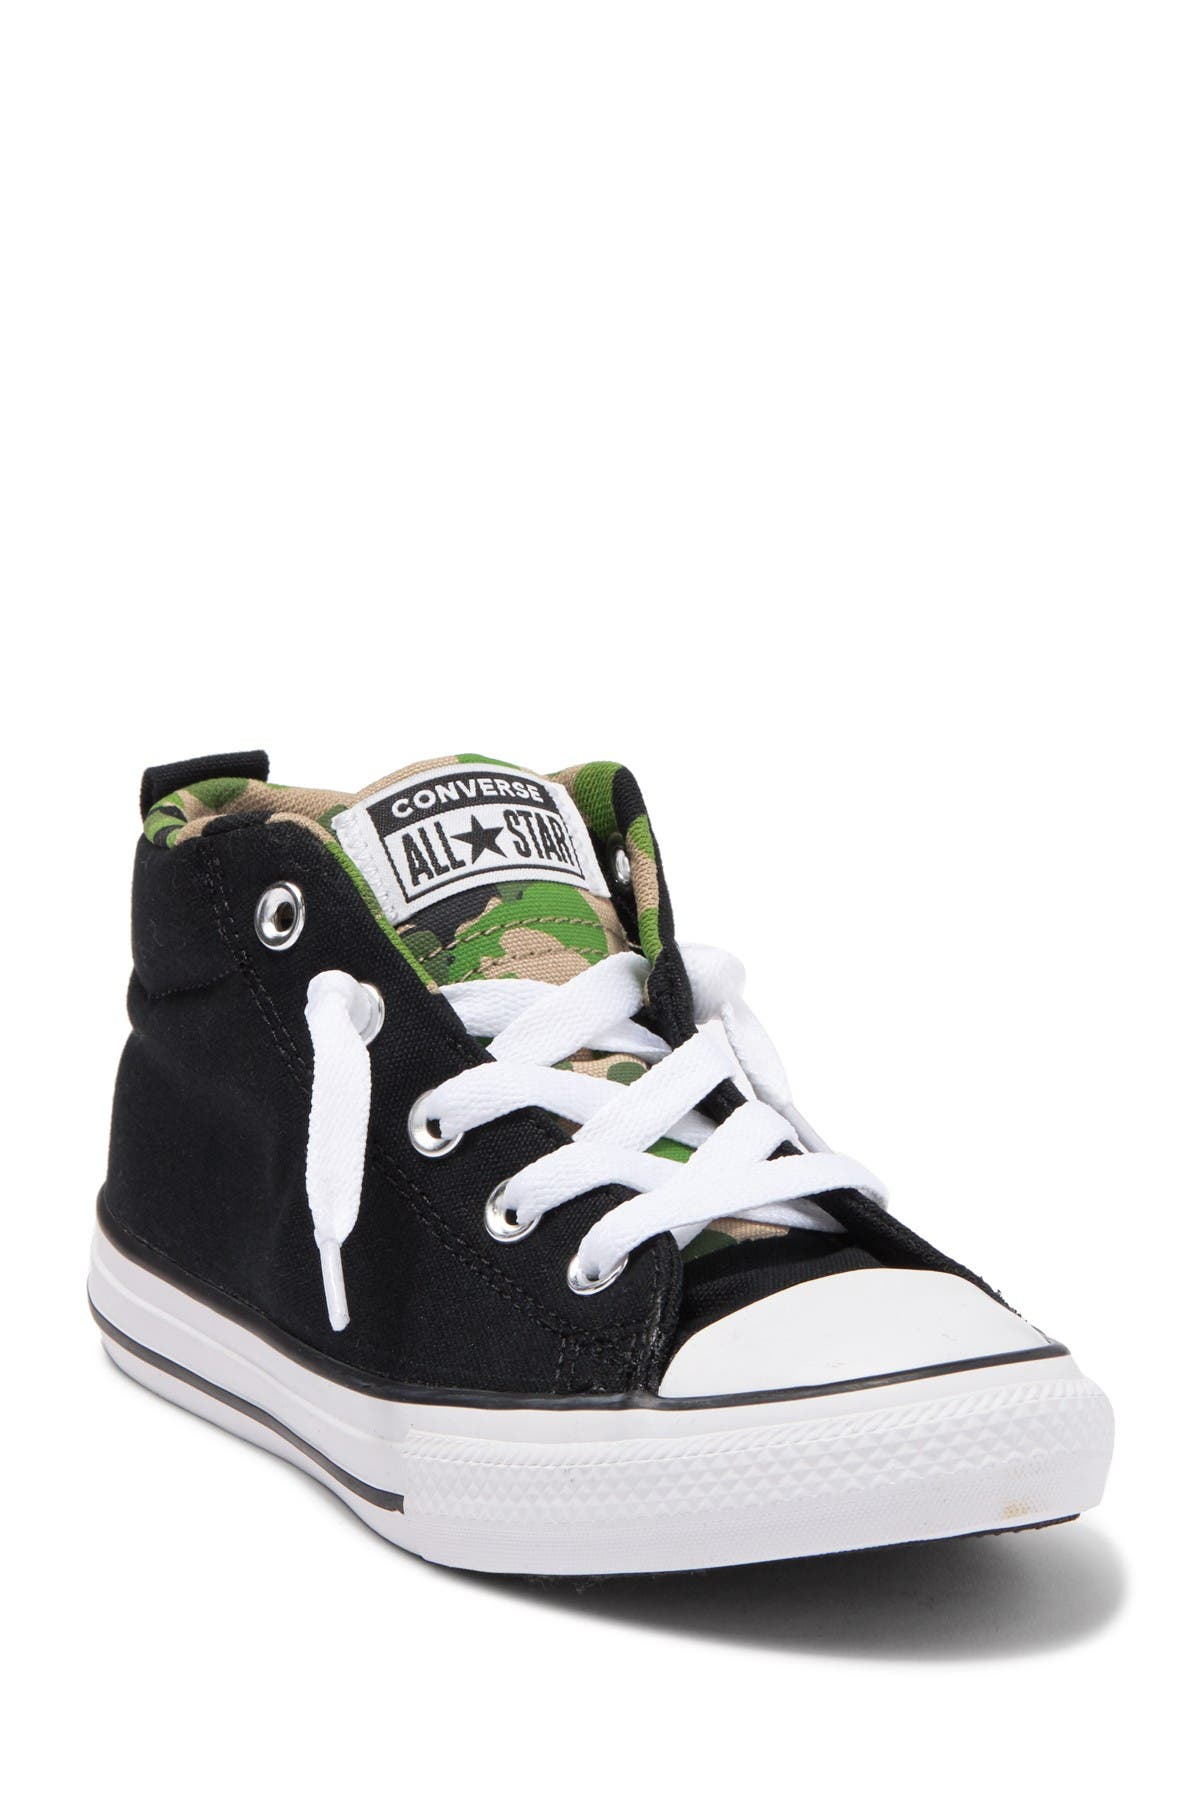 Image of Converse Chuck Taylor All Star Street Sneaker